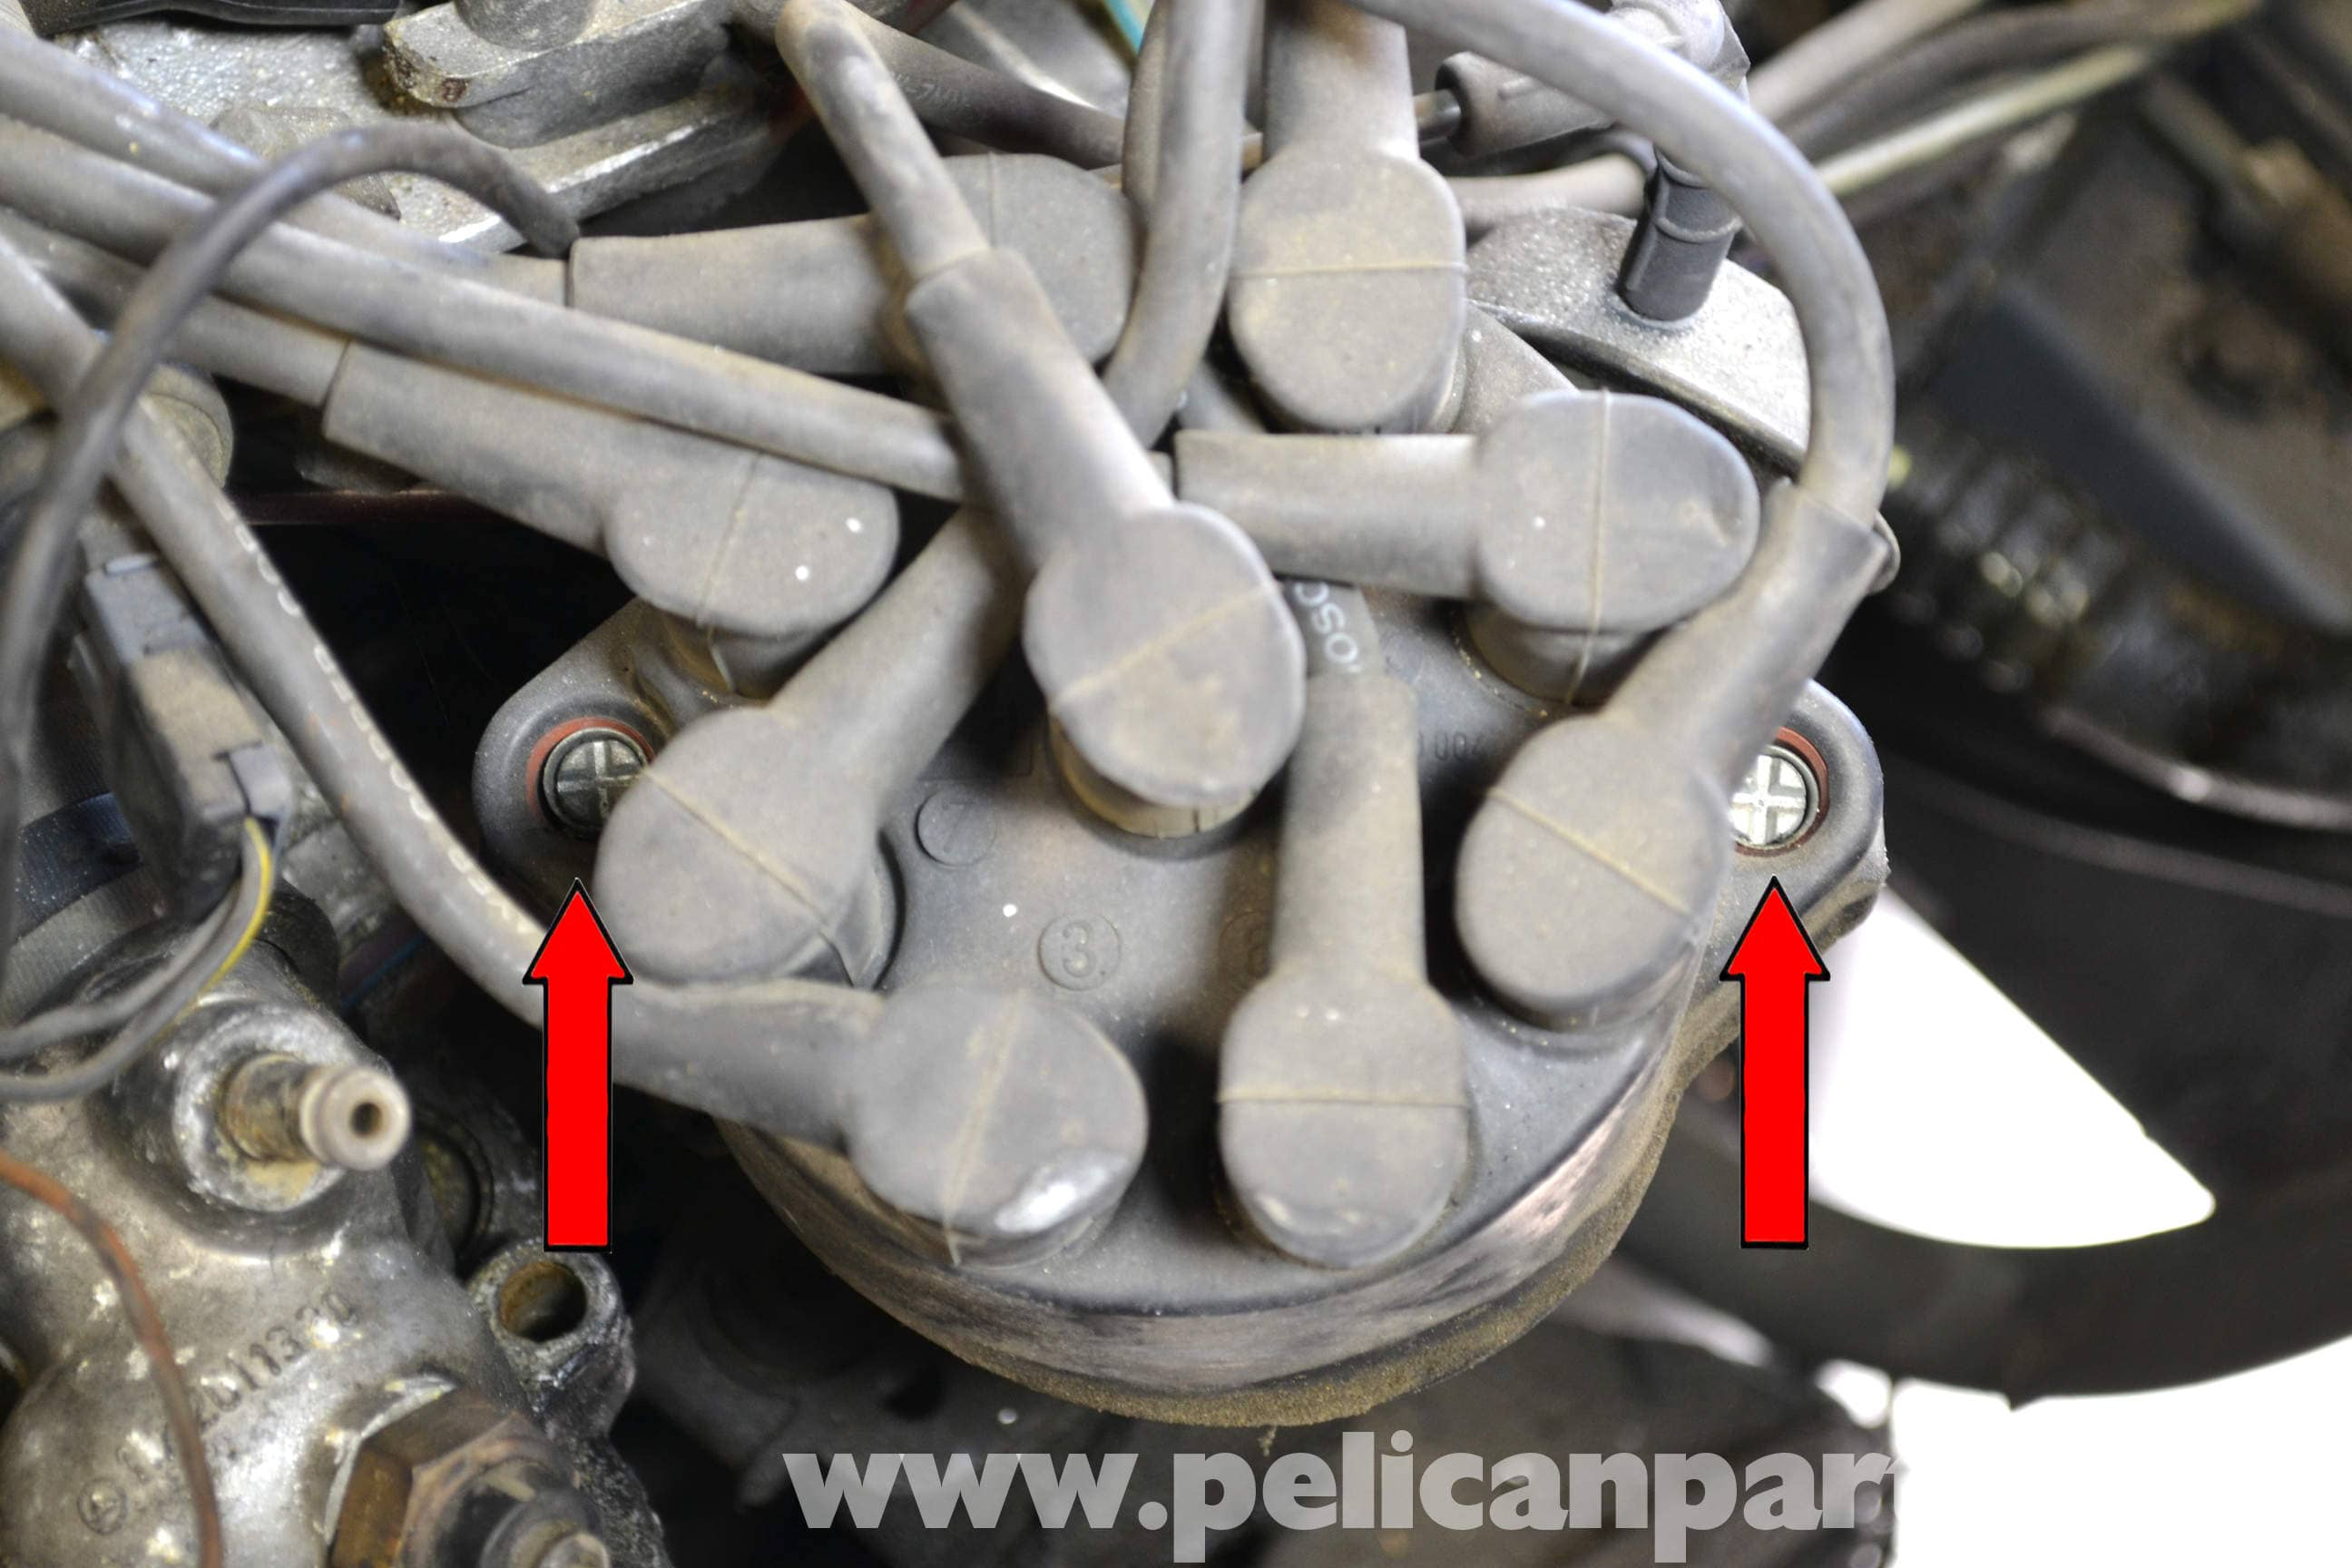 11 Flat Pin Relay Wiring Diagram Mercedes Benz W126 Ignition Wires Rotor And Distributor